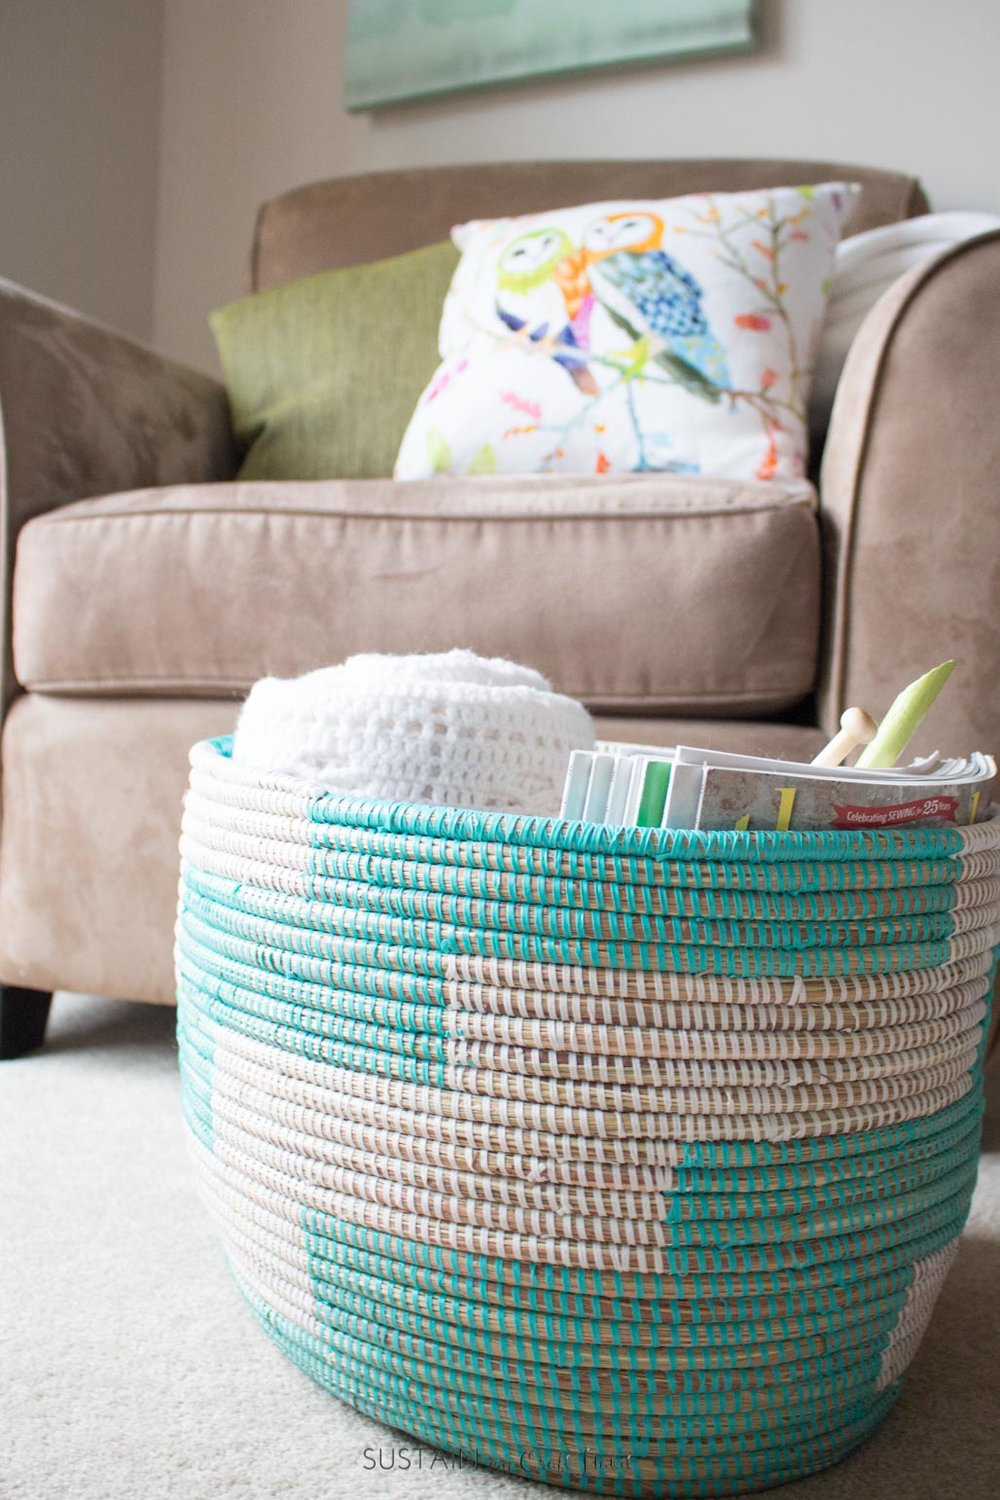 Cozy Living Room Decorating Ideas | Create a relaxing reading nook | Self-care ideas for moms | Knitting basket #ad